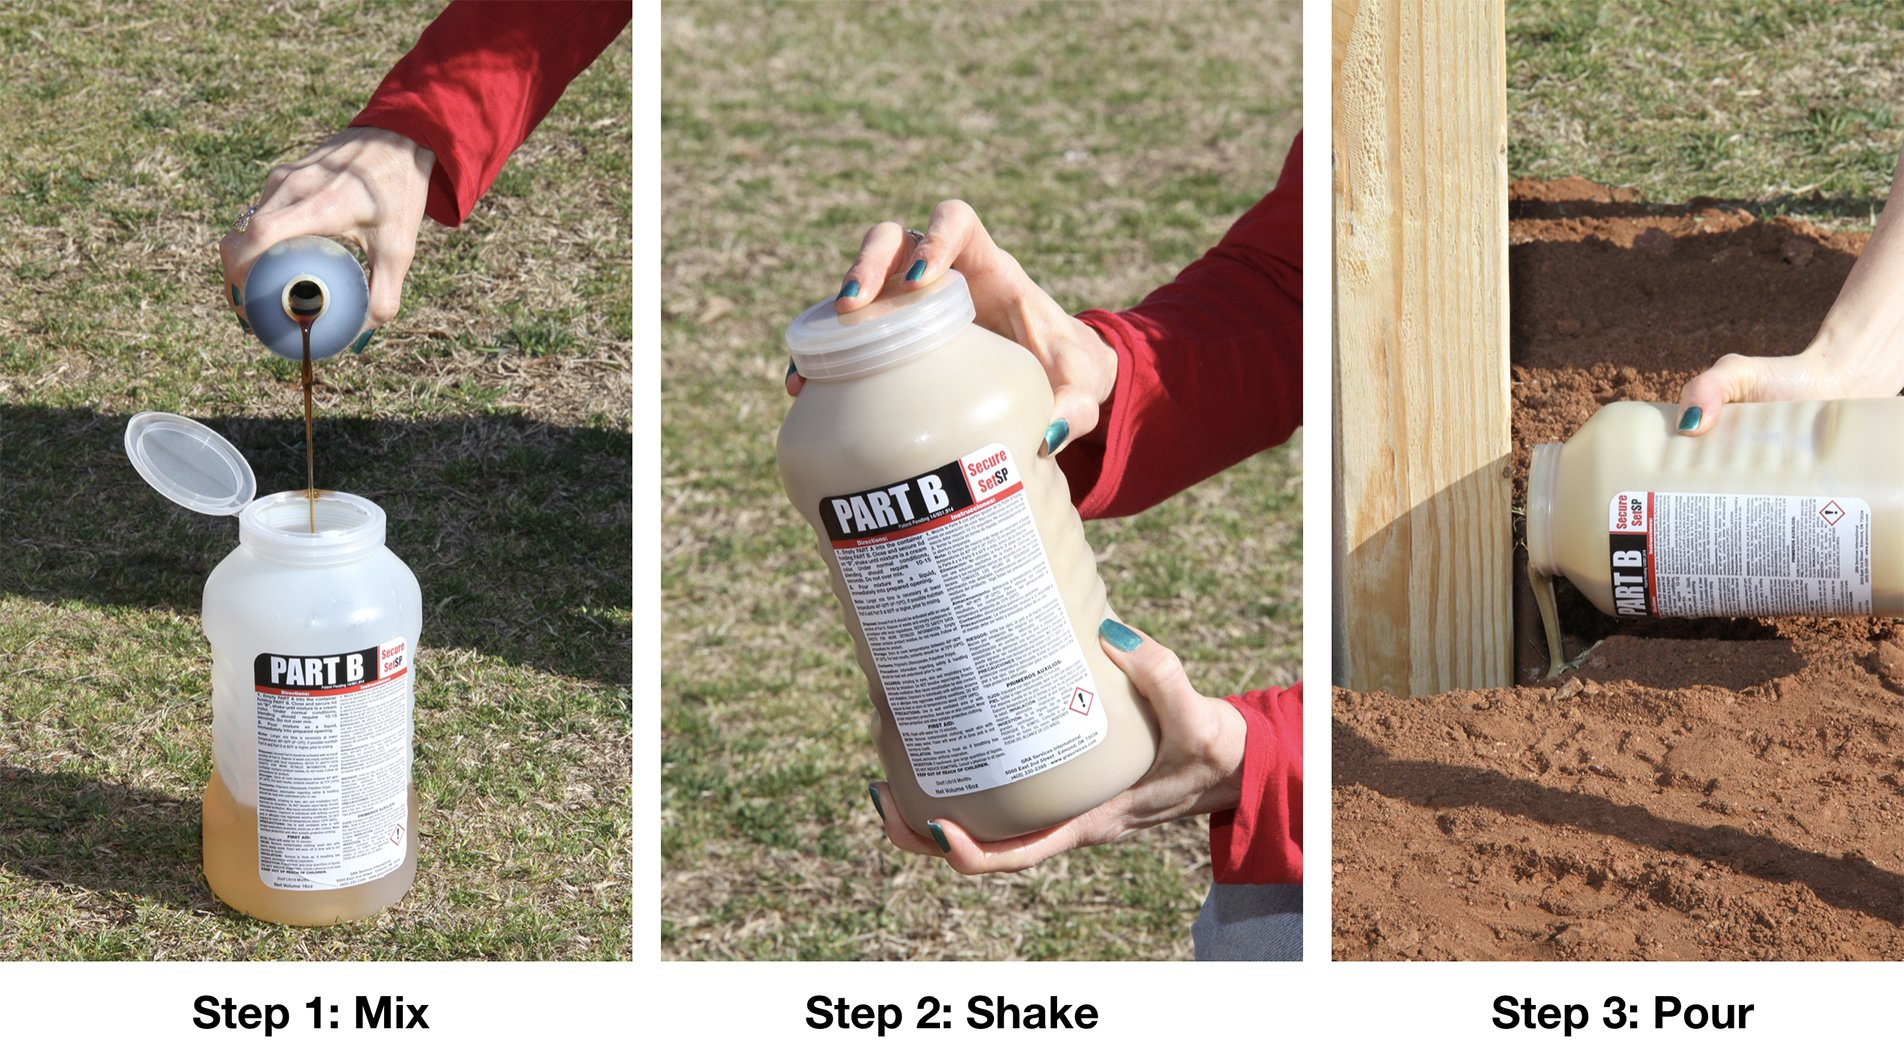 Secure Set SP (Shake & Pour) - 1 Post Kit - Commercial Grade - 32 oz. Fast, Secure & Safe Concrete Alternative for Easy Fence Post Installation by Secure Set (Image #1)